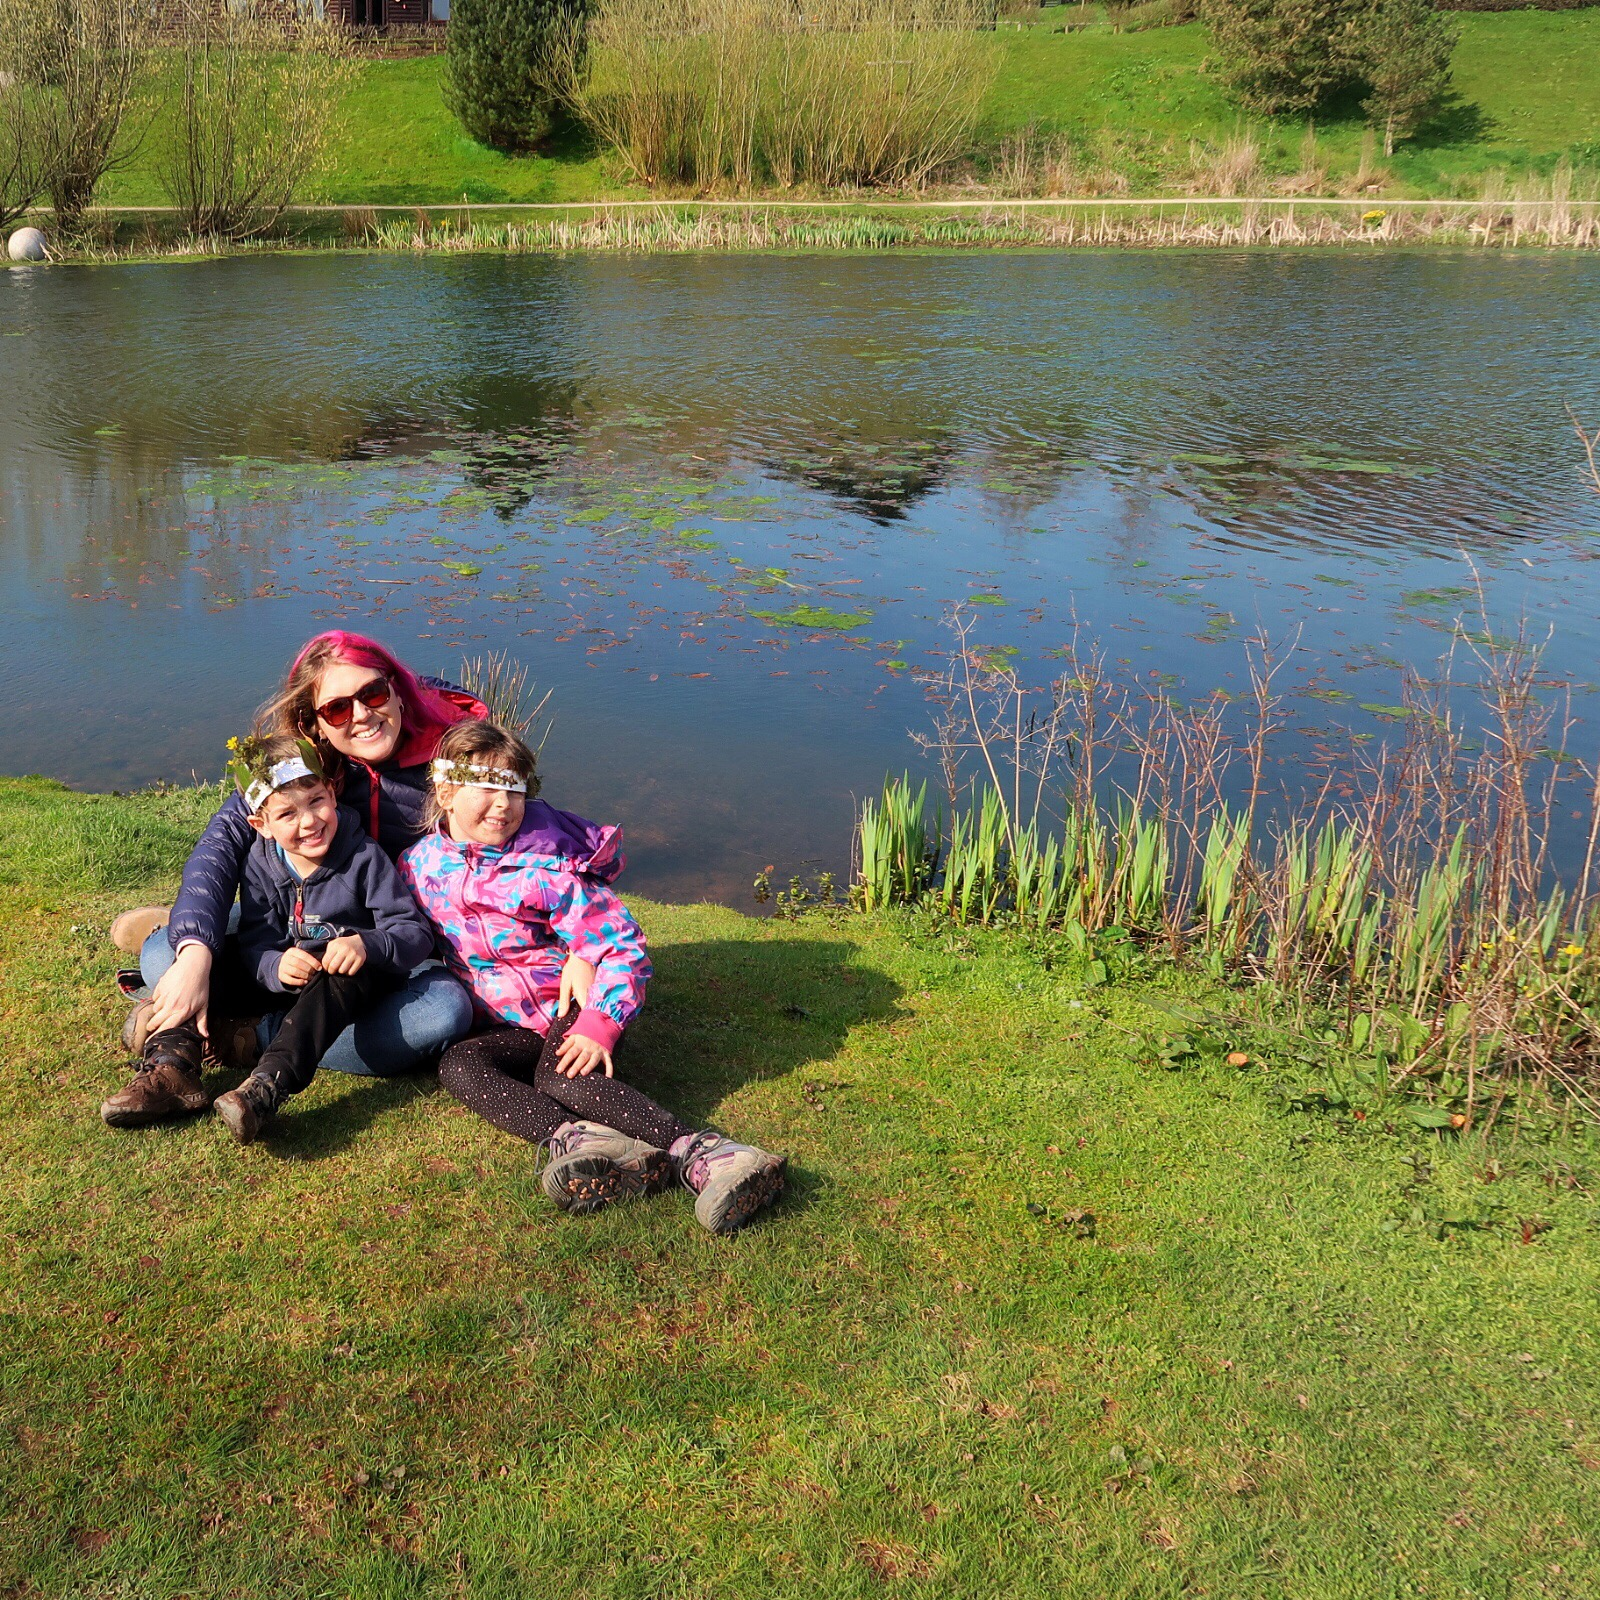 Myself and the children having a hug sitting on the grassy bank of another lake.